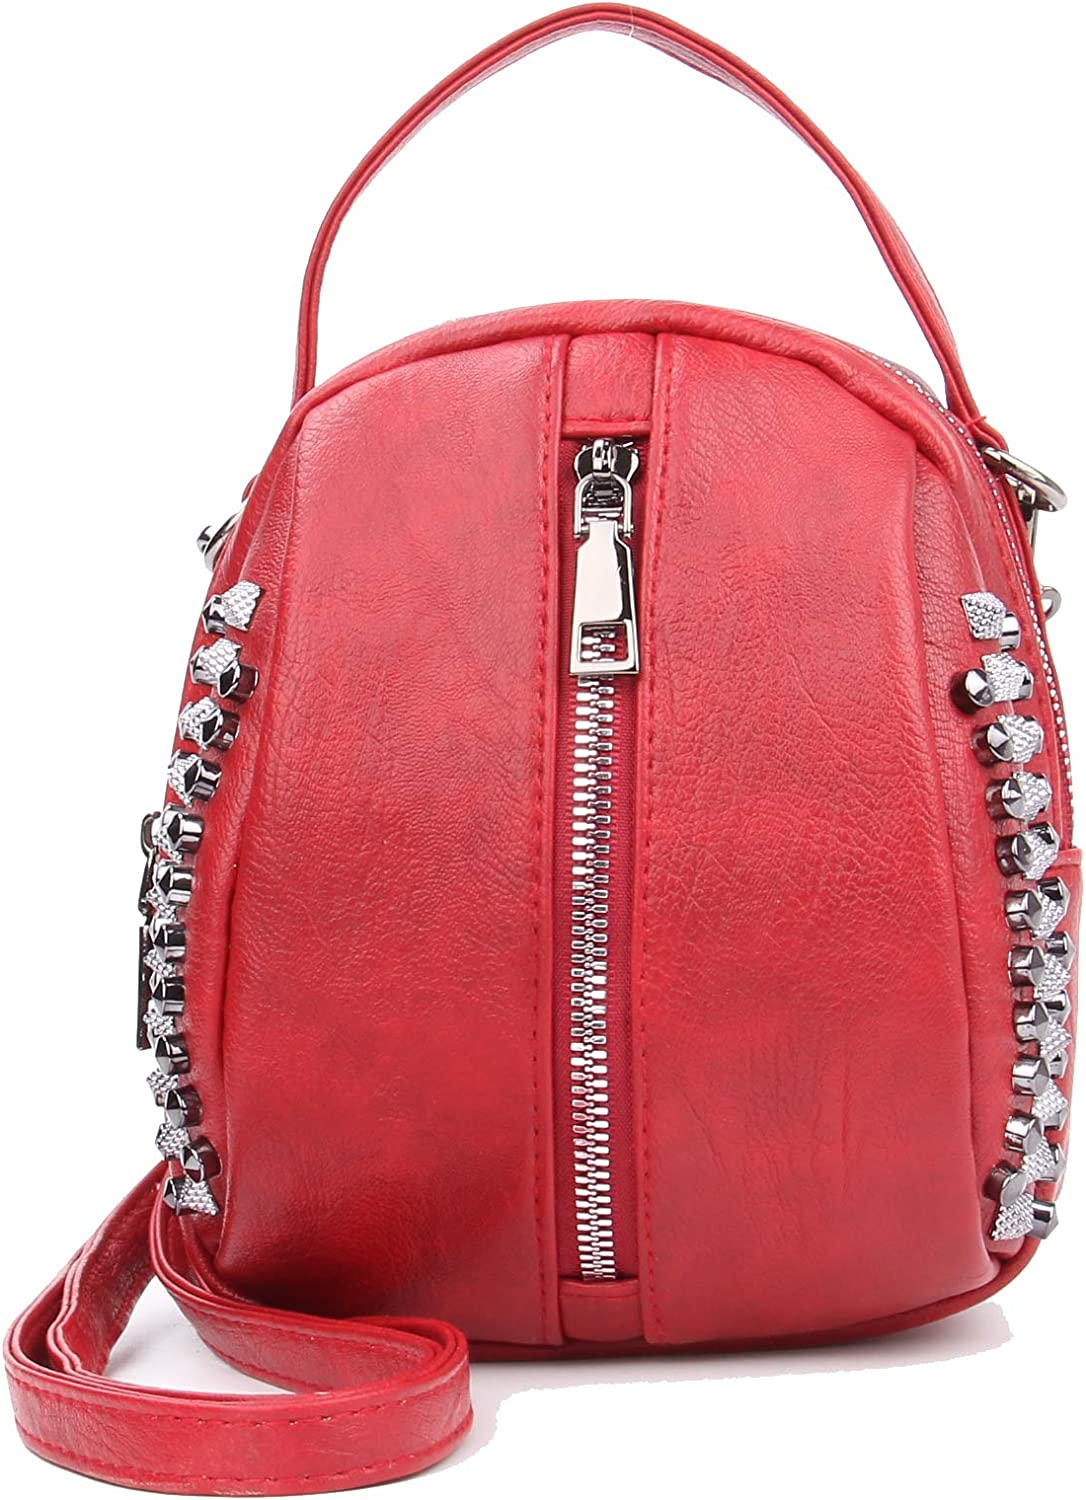 Rivet Studded Crossbody...